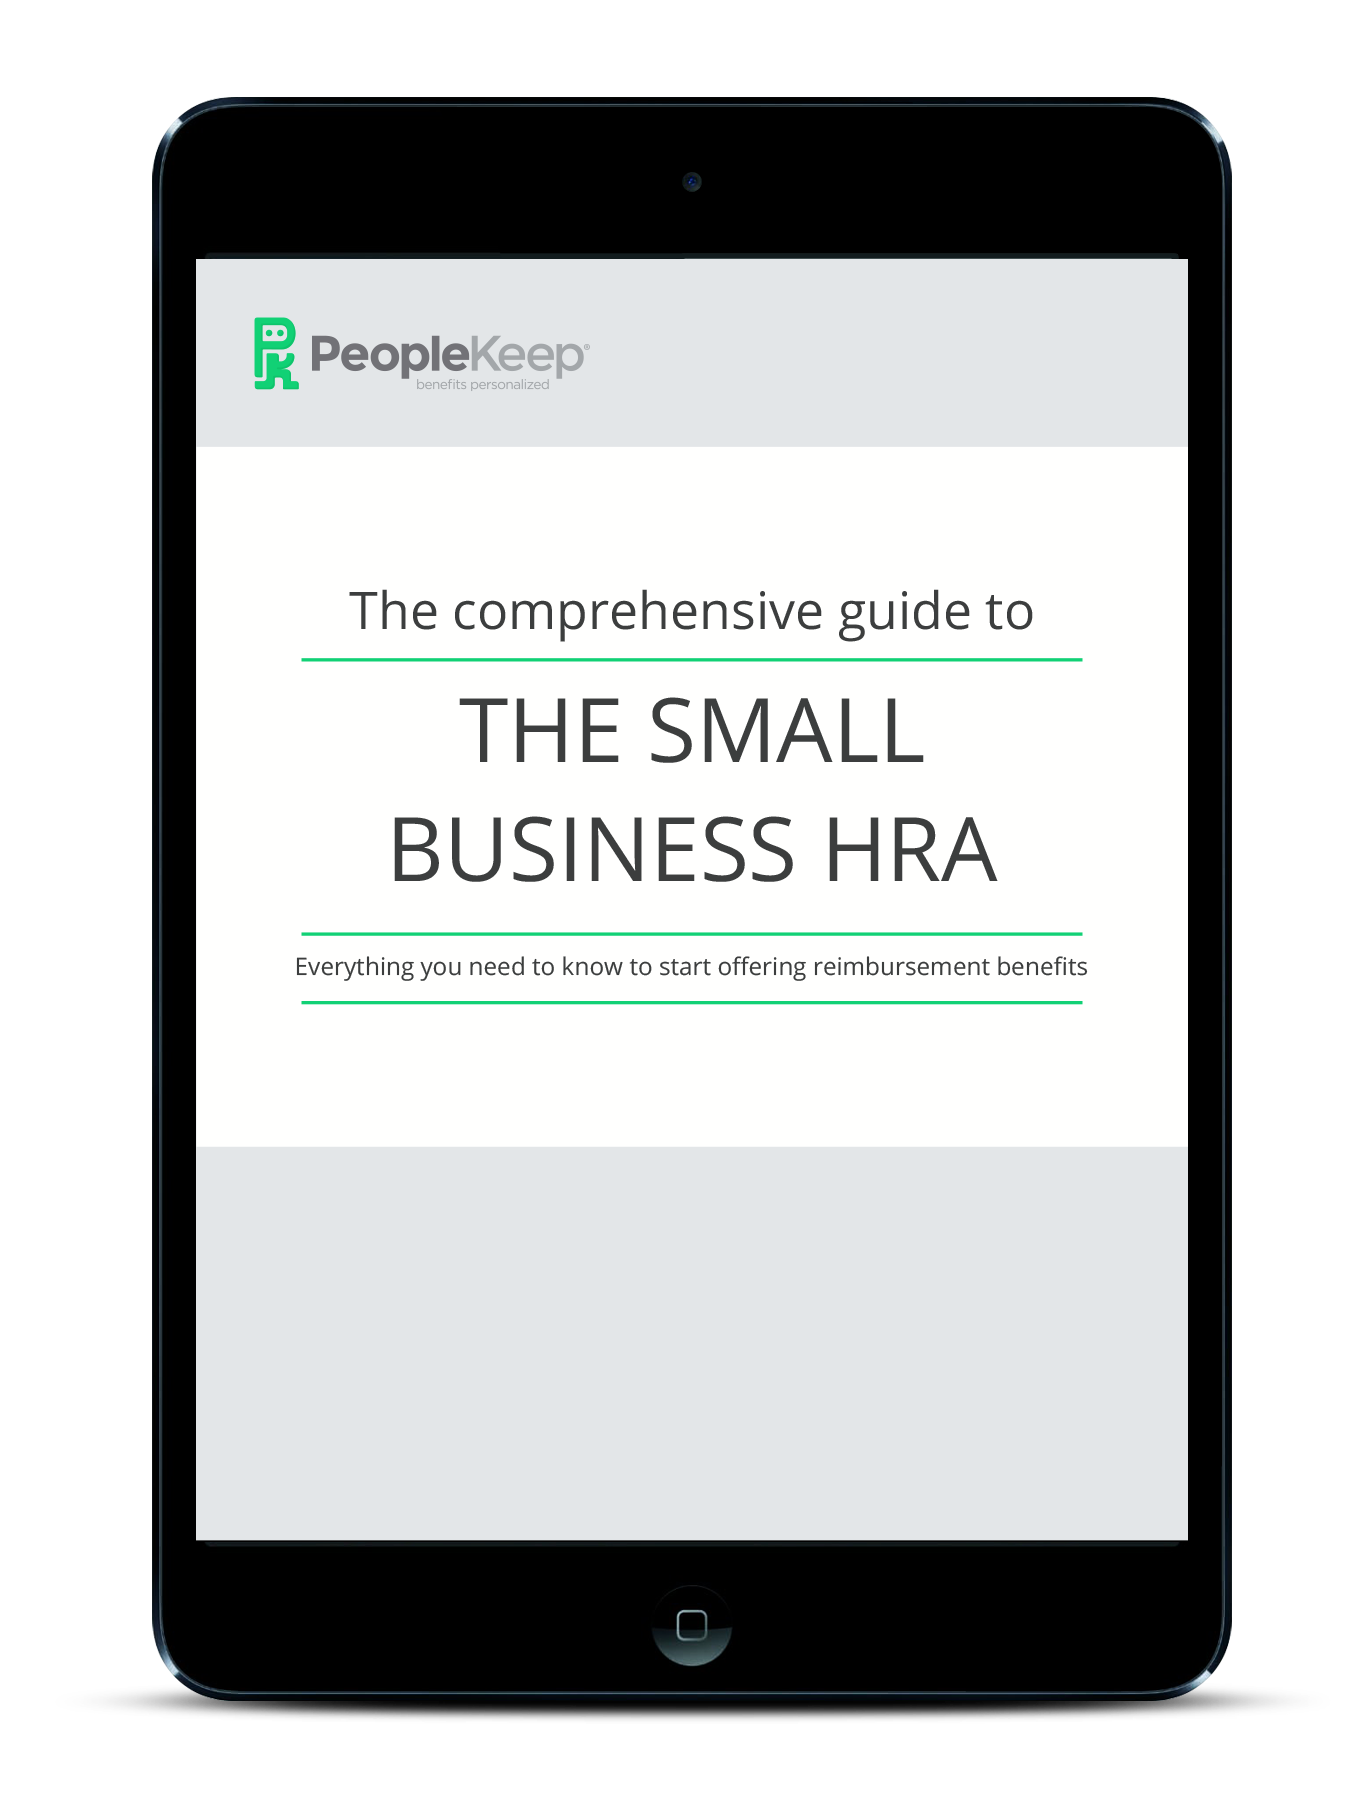 Small Business HRA iPad cover.png